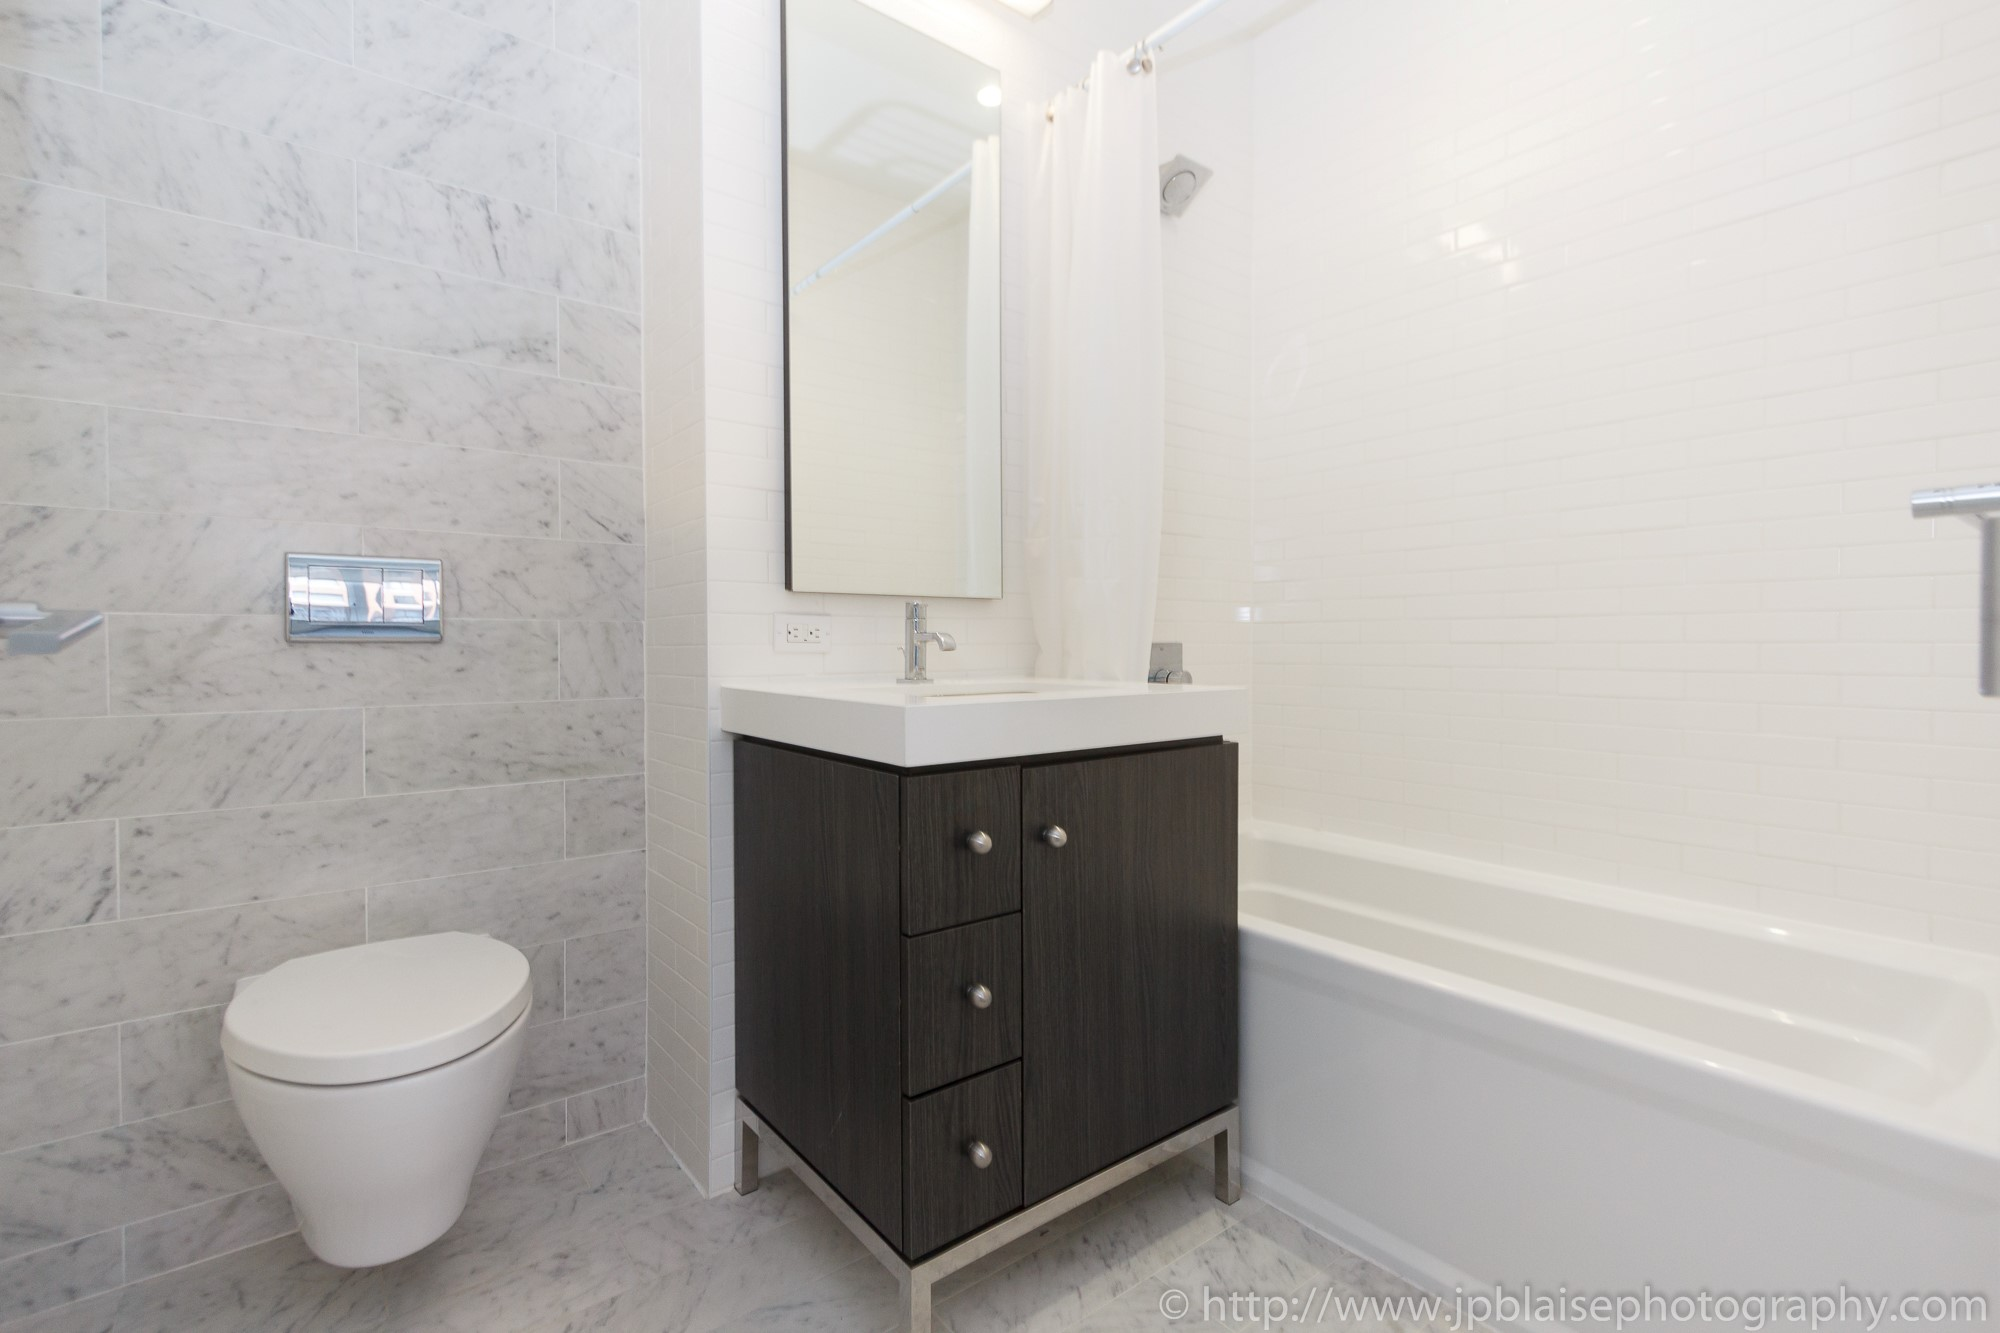 Real estate apartment photographer Midtown west 1 bedroom unit bathroom